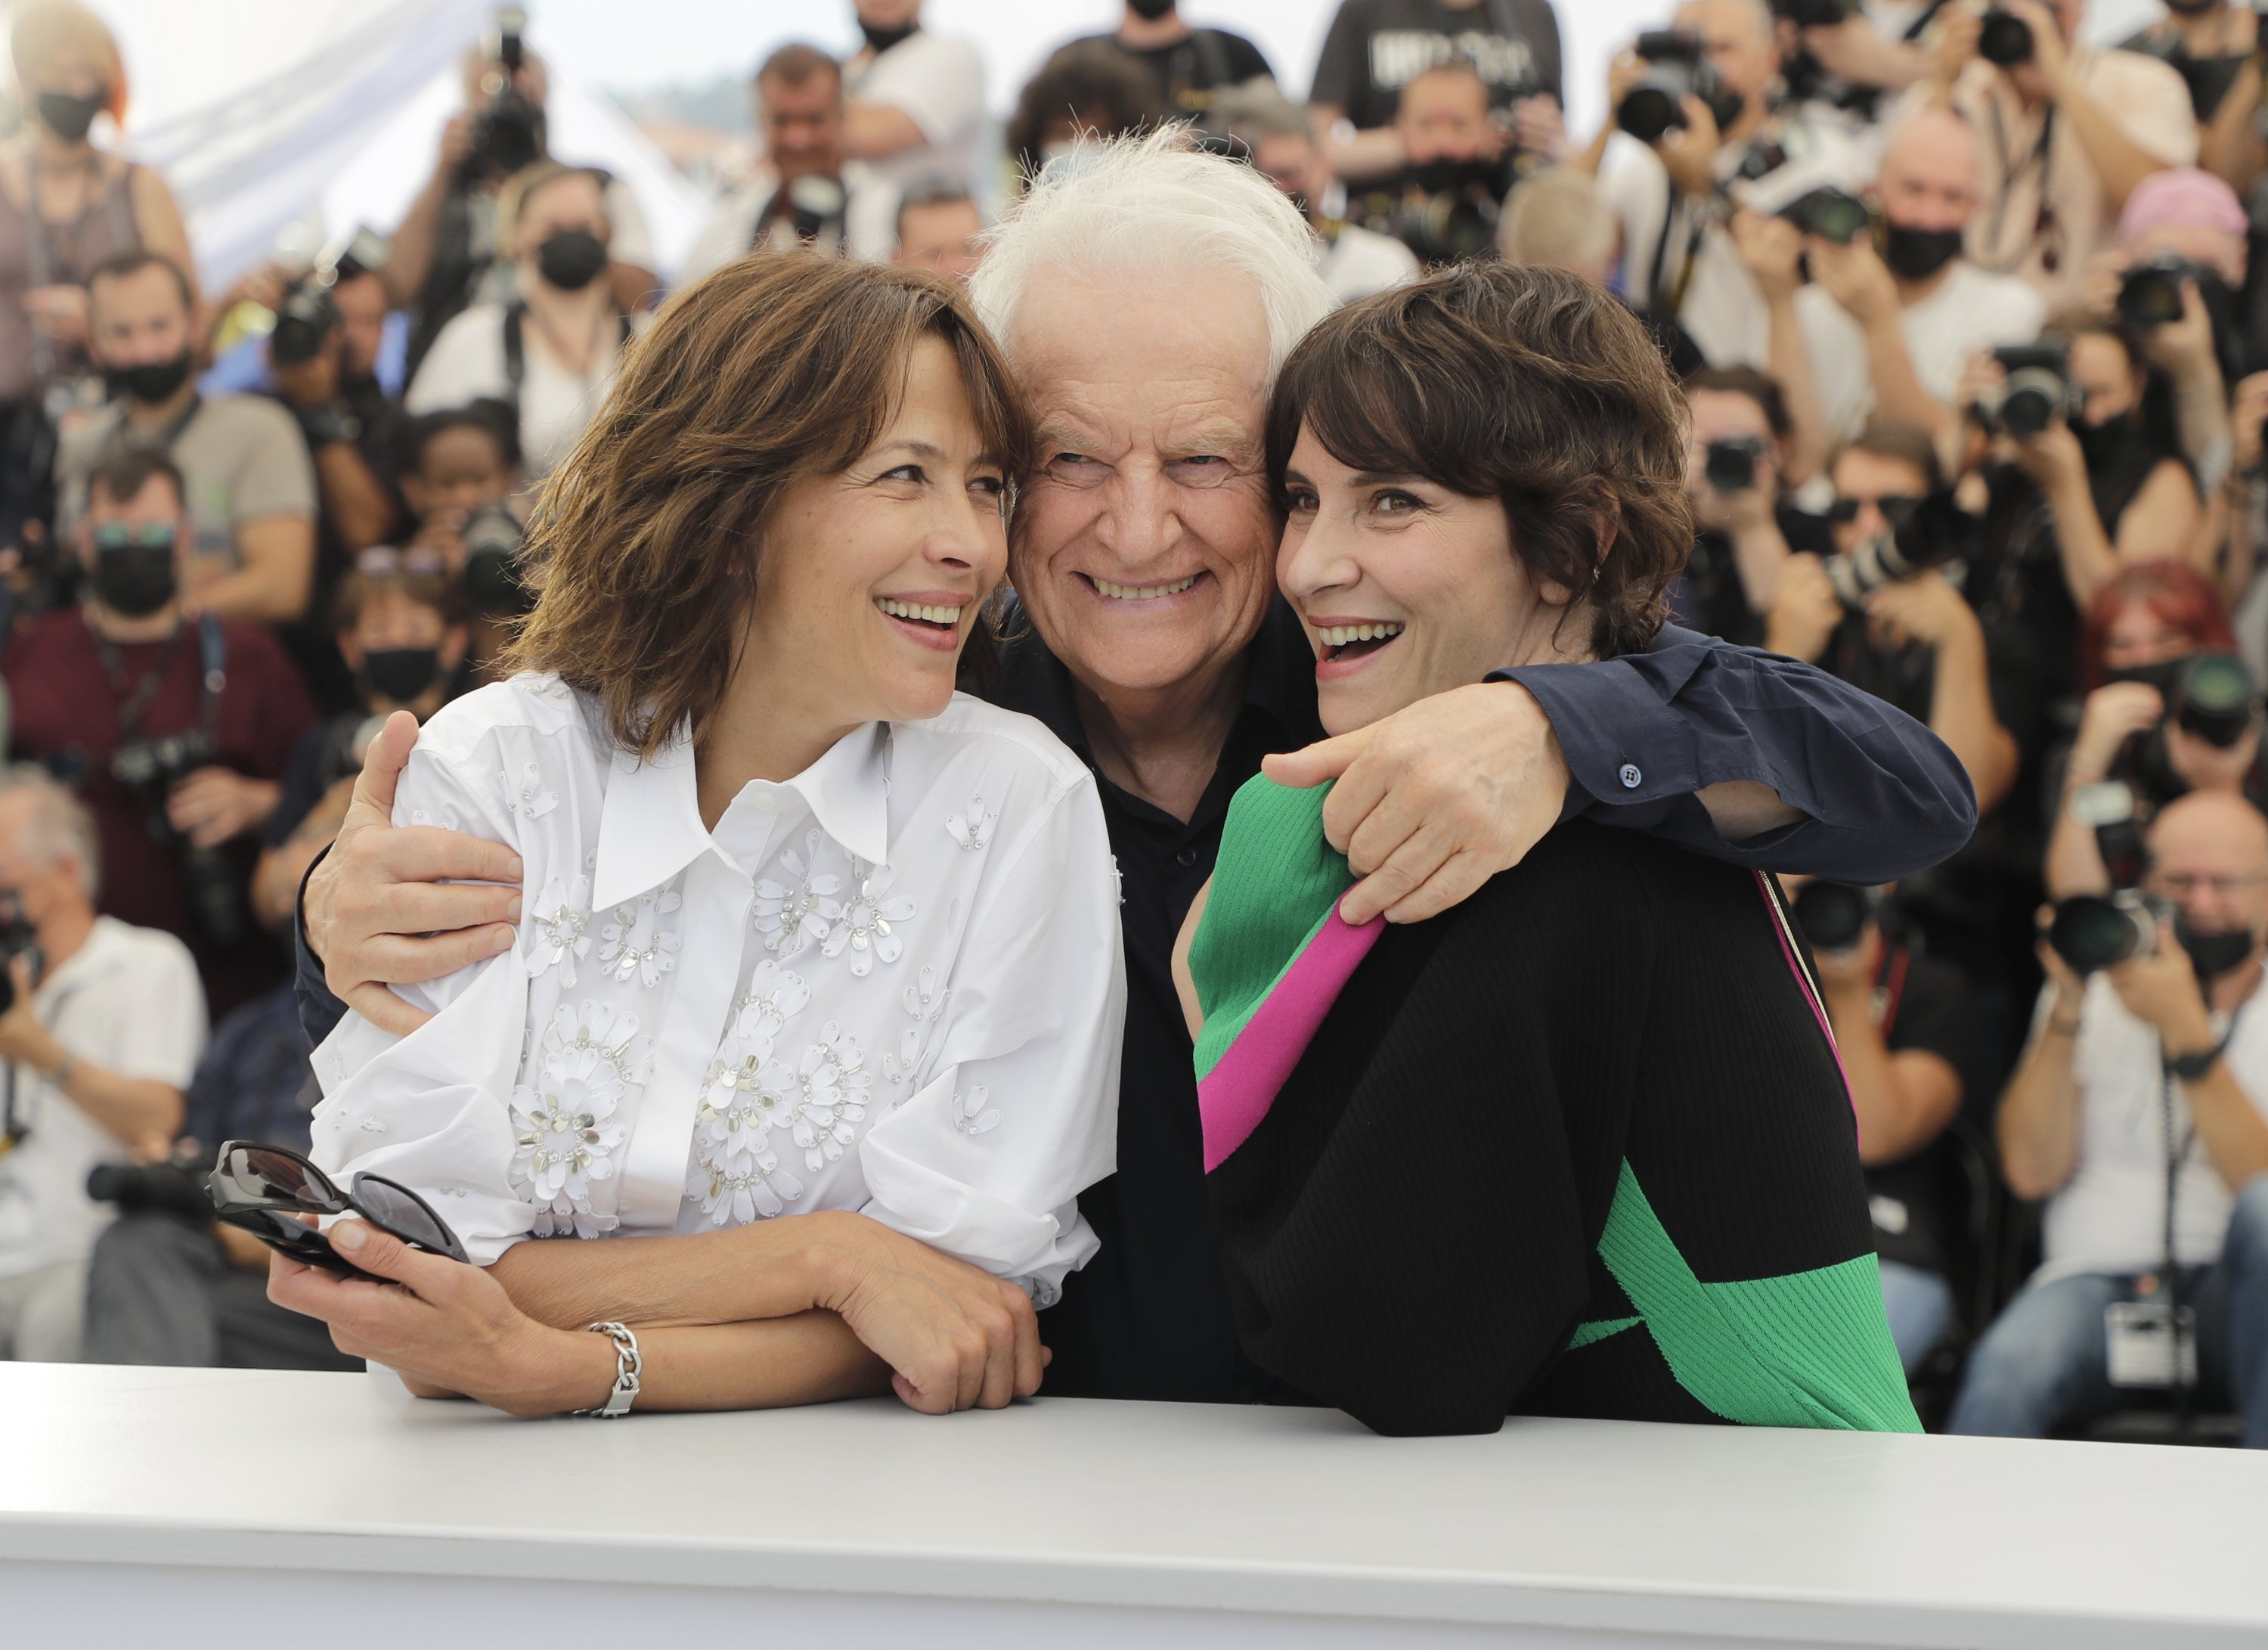 Sophie Marceau (L), Andre Dussollier (C) and Geraldine Pailhas (R) pose for photographers at the photocall for the film 'Everything Went Fine' at the 74th international film festival, Cannes, southern France, Thursday, July 8, 2021. (AP Photo)